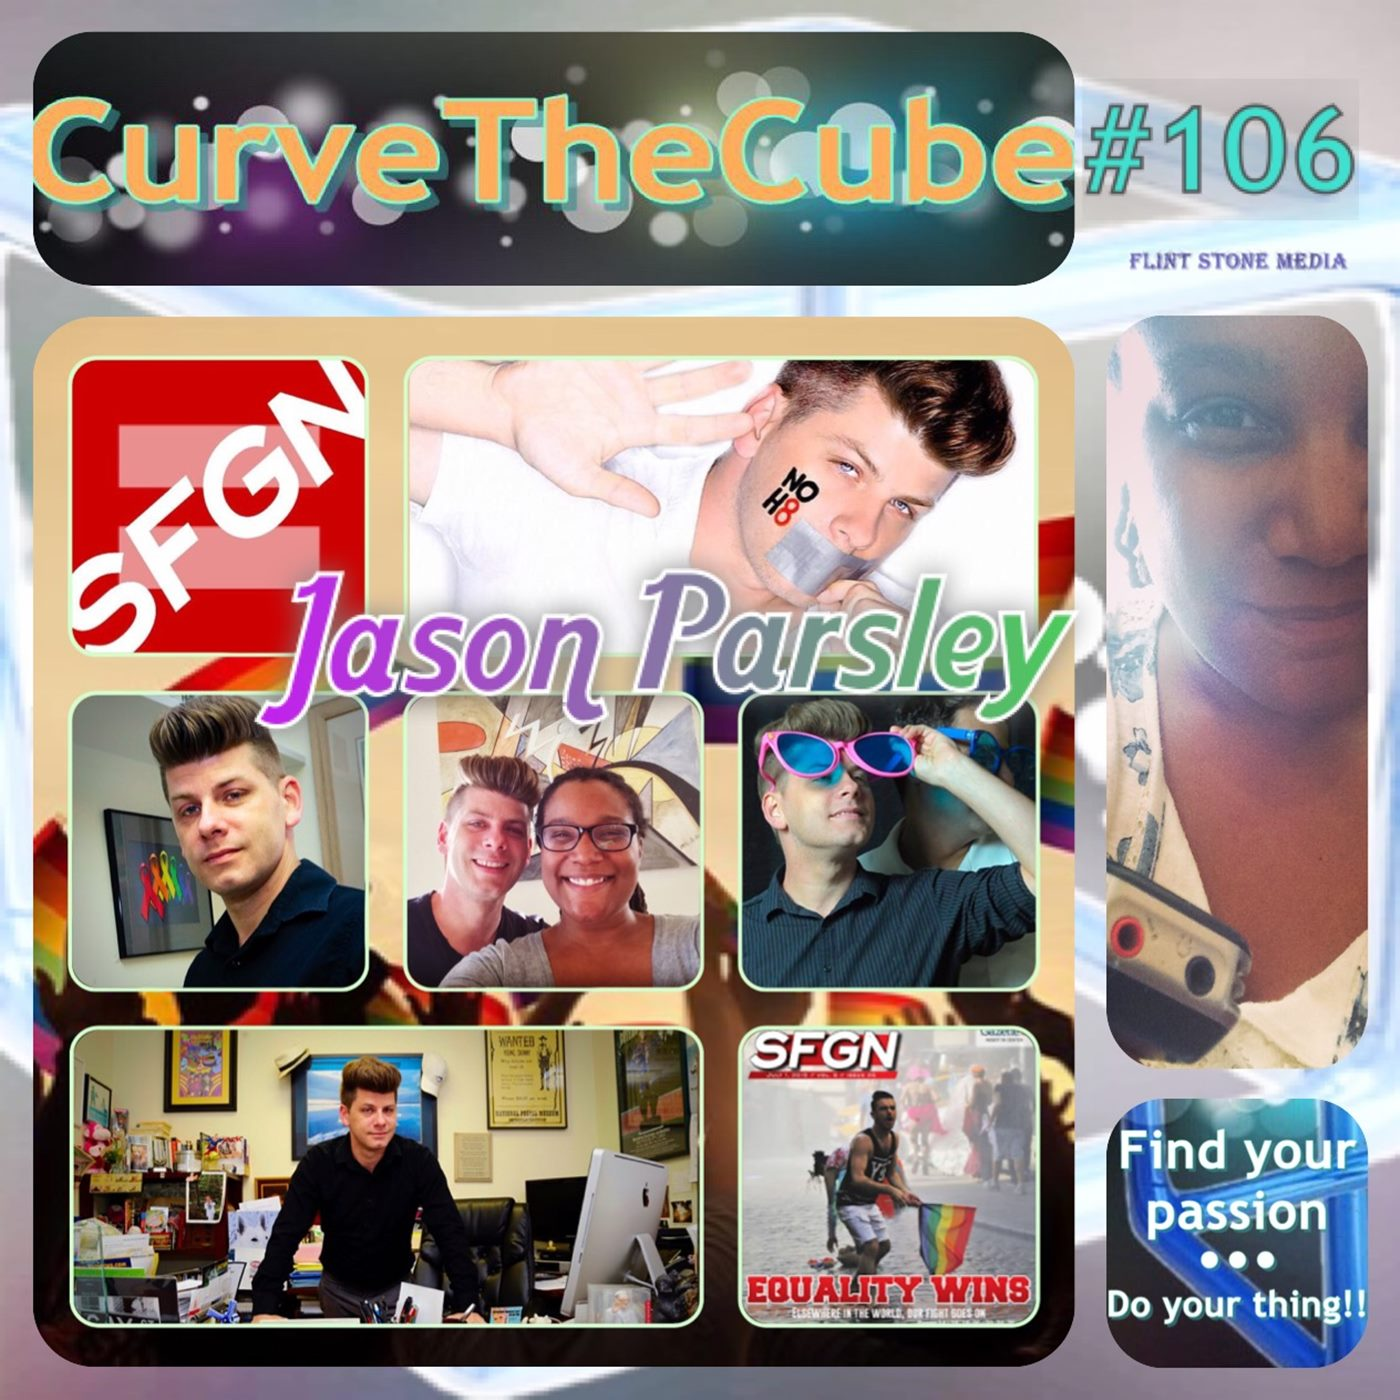 #106 - NEWS and CULTURE - Jason Parsley - 20161125